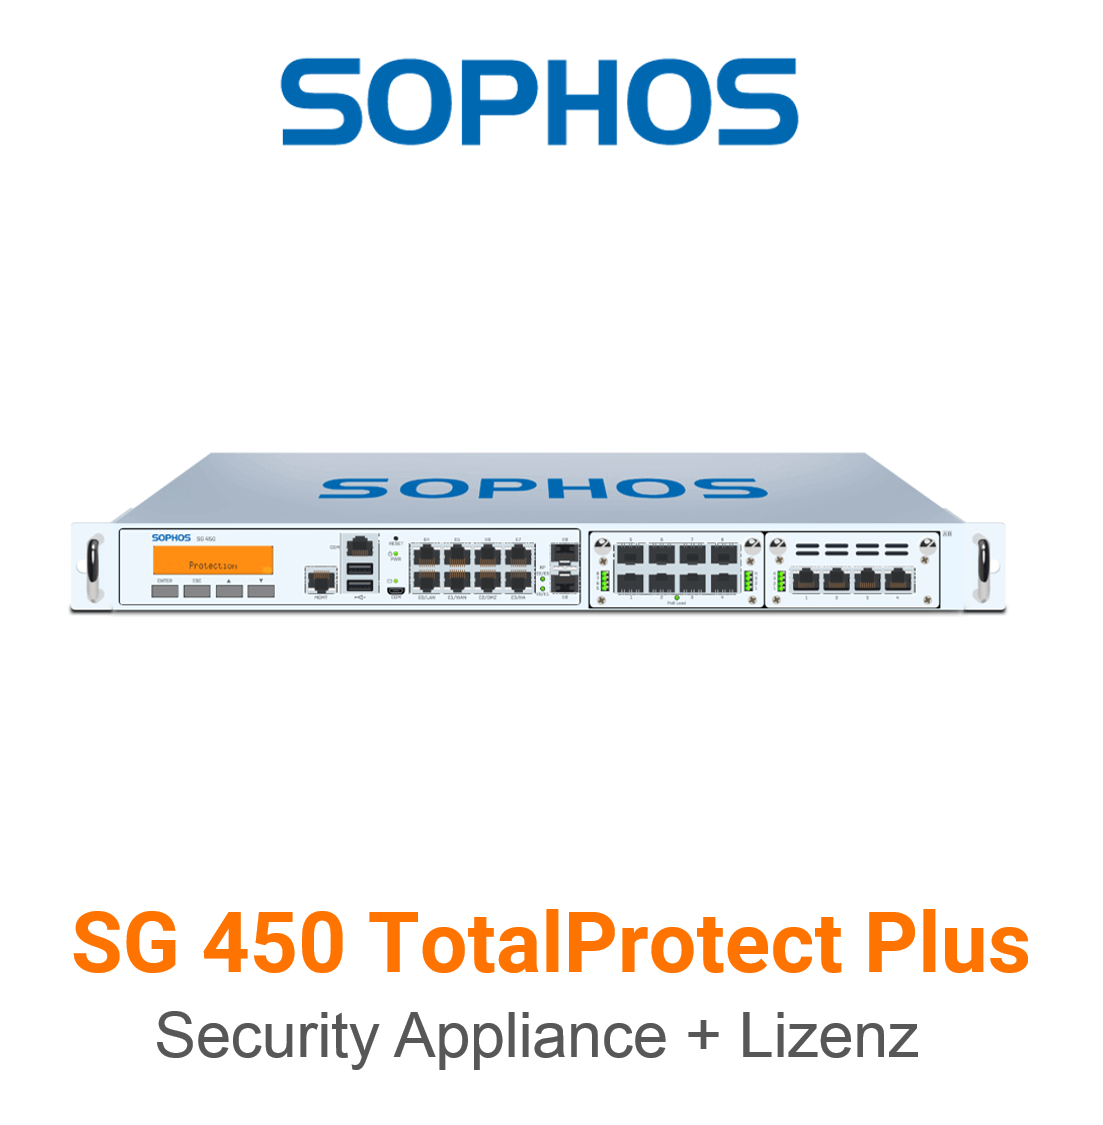 Sophos SG 450 TotalProtect Plus Bundle (Hardware + Lizenz)